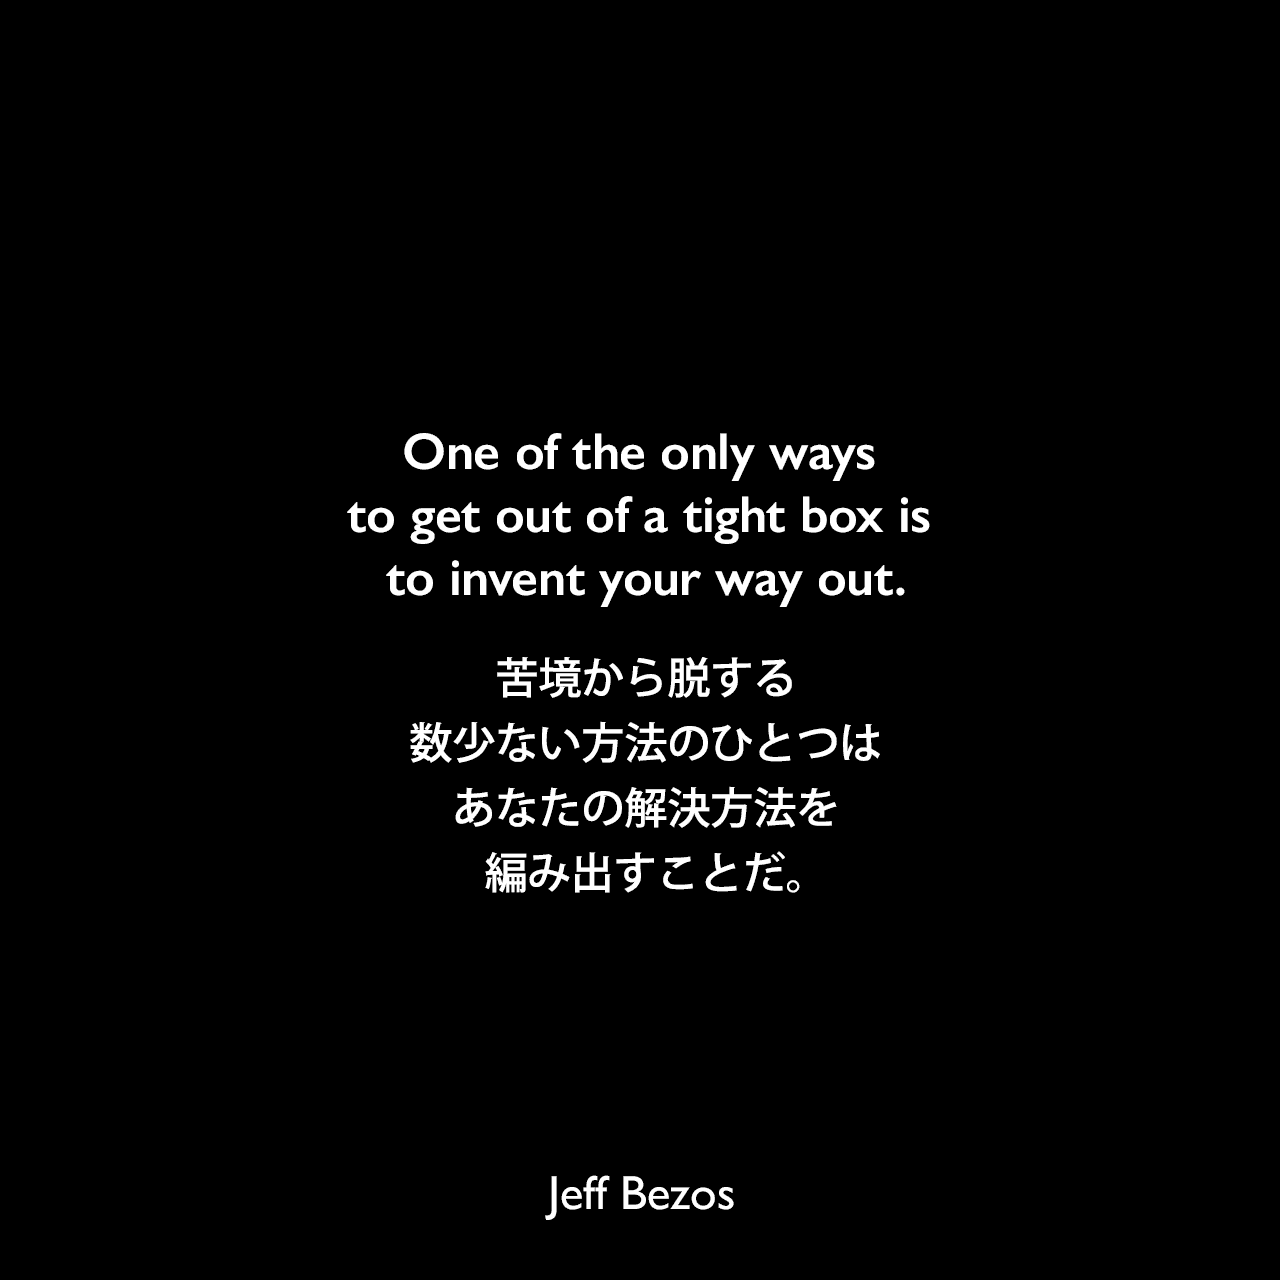 One of the only ways to get out of a tight box is to invent your way out.苦境から脱する数少ない方法のひとつは、あなたの解決方法を編み出すことだ。